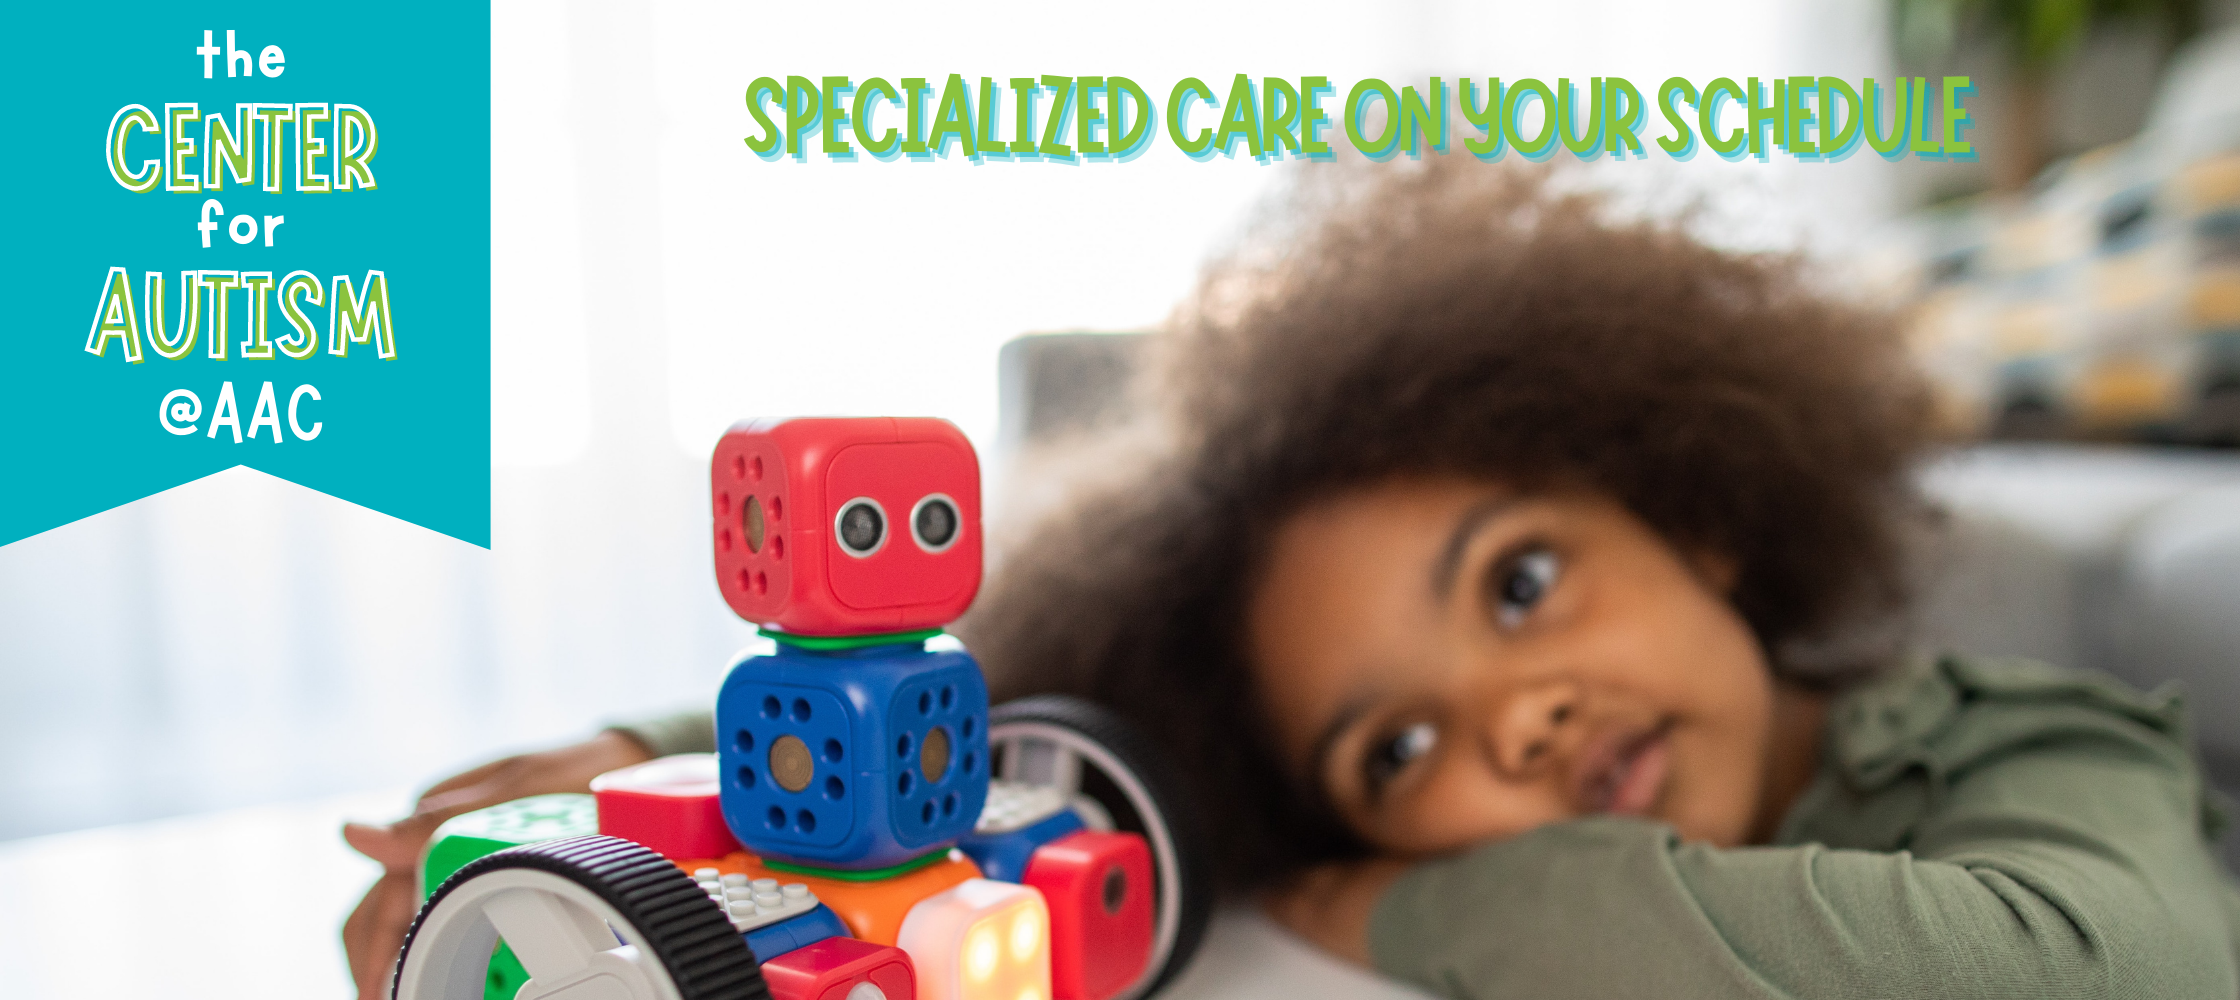 """Photo of young girl with blocks and toys, caption """"The Center for Autism at AAC Las Vegas. Specialized Care on Your Schedule"""""""